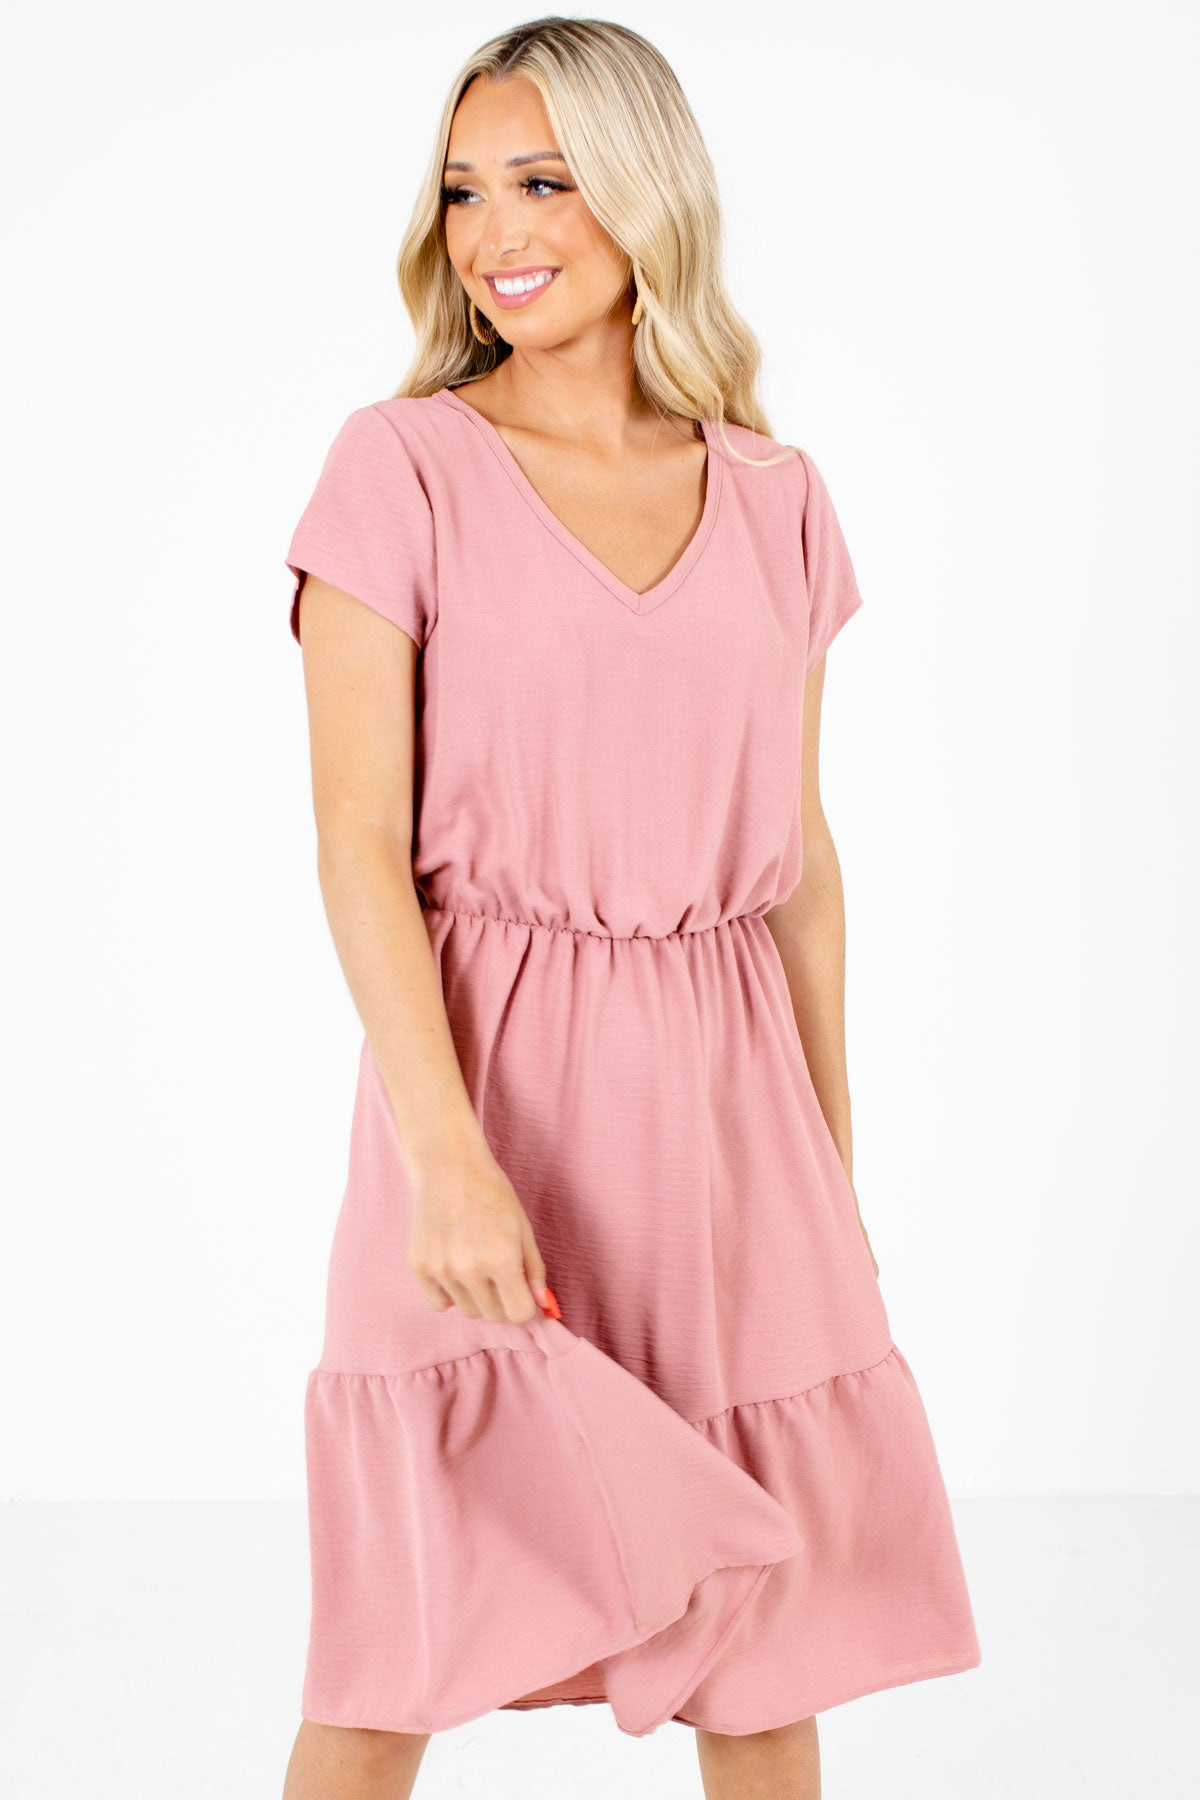 Pink V-Neckline Boutique Midi Dresses for Women